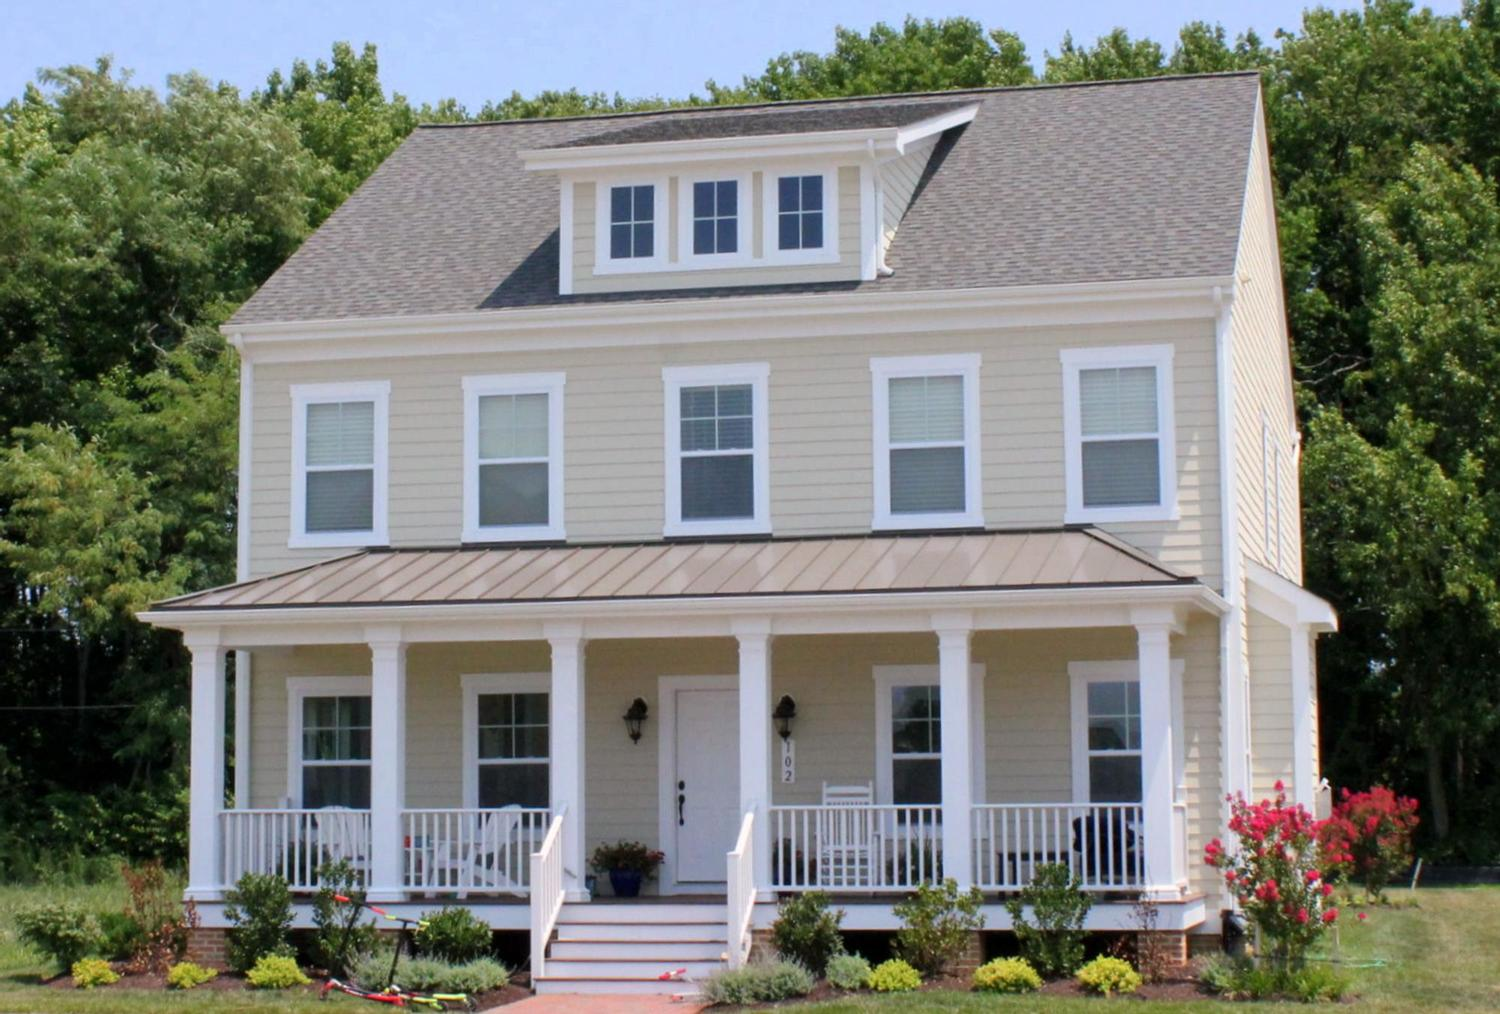 Unifamiliar por un Venta en Covell Signature Homes - Belle Haven Classic Chester, Maryland 21619 United States